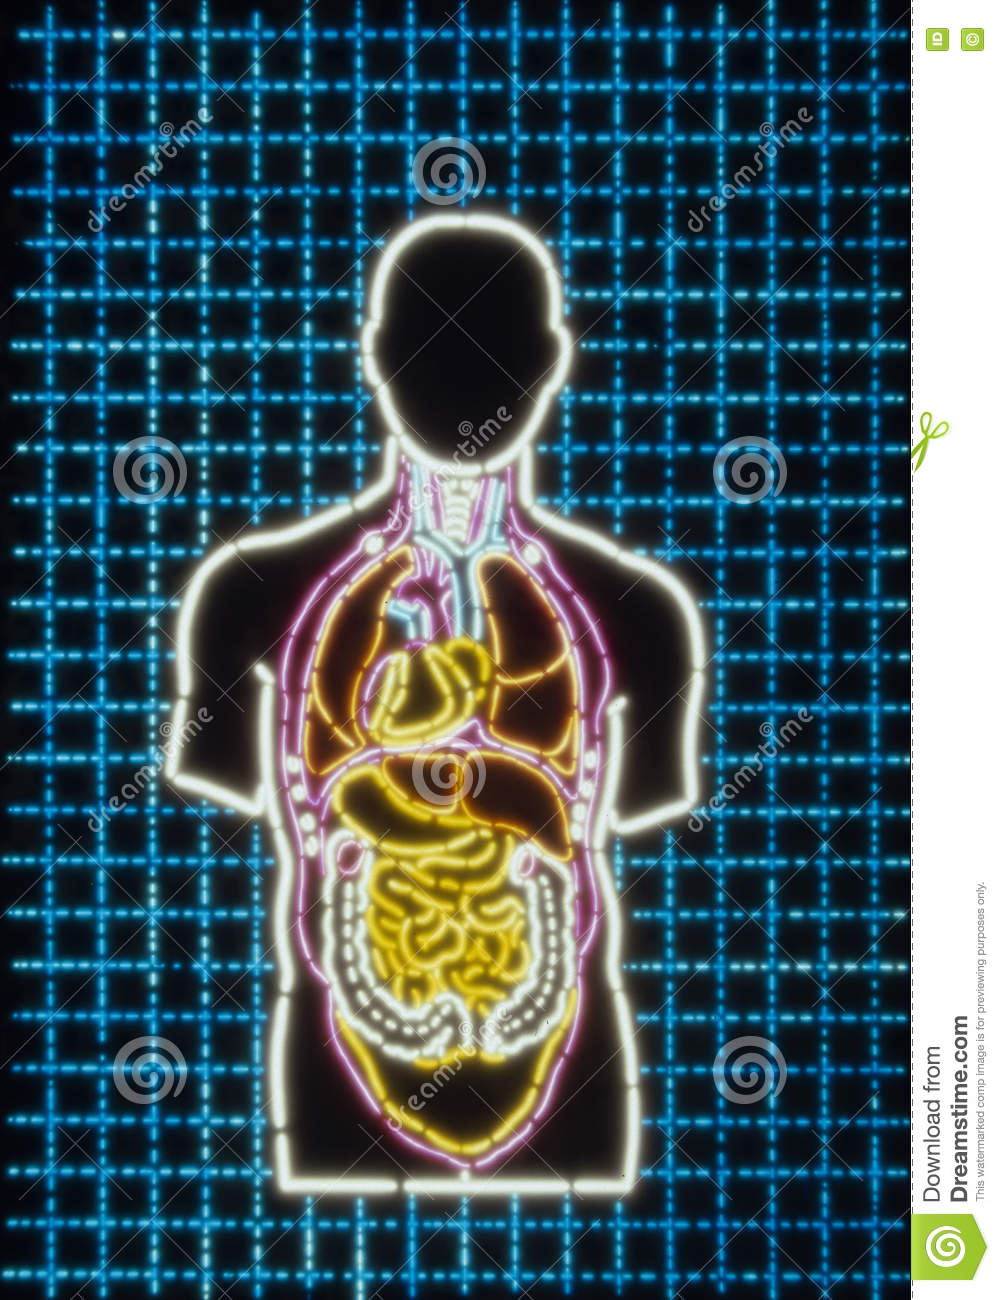 Photo-illustration of a Human Body